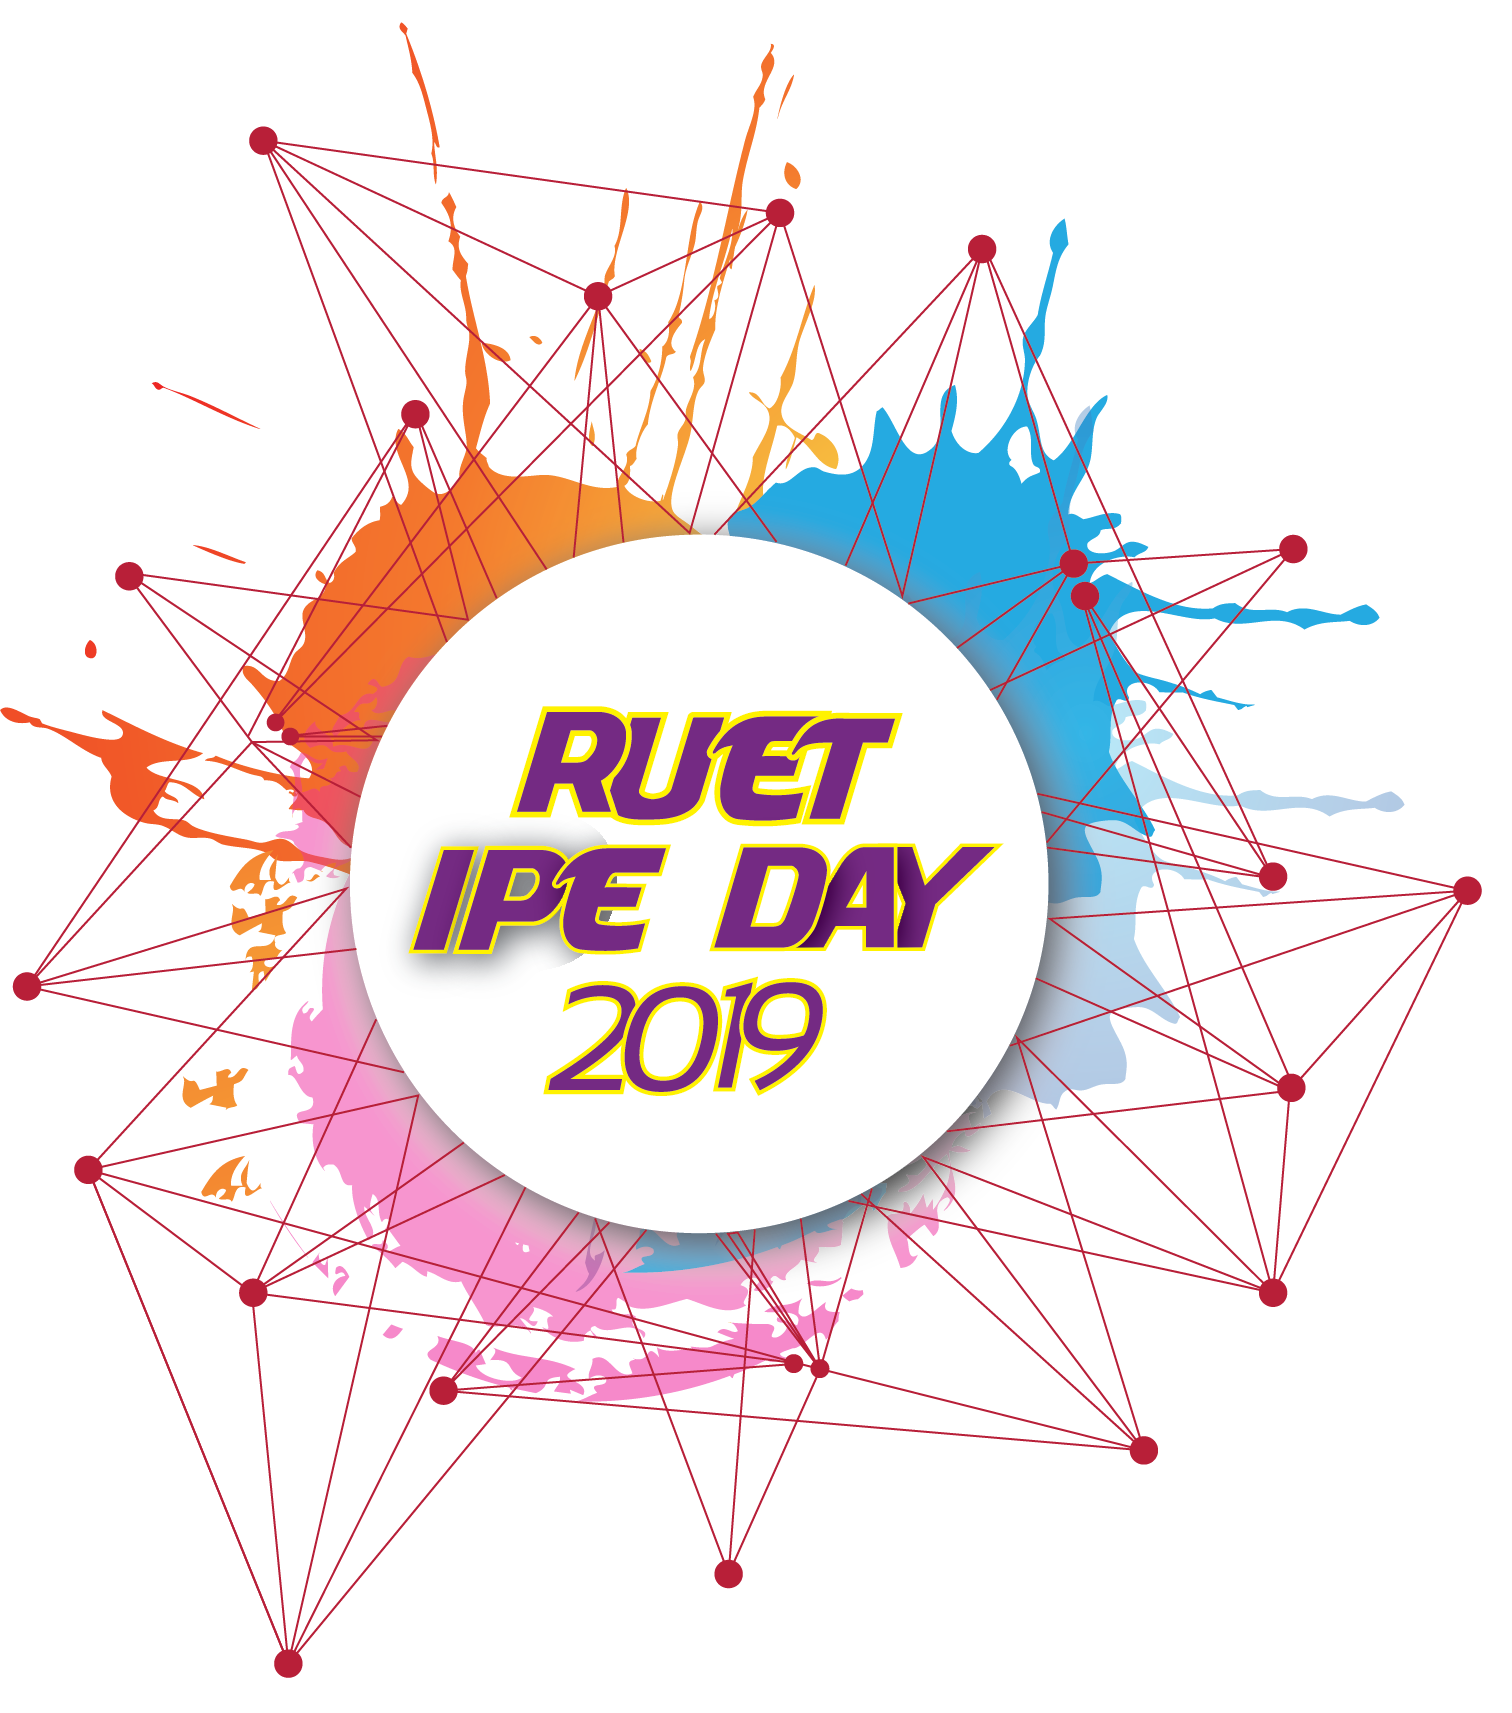 RUET IPE DAY to be observed on 18-19 July